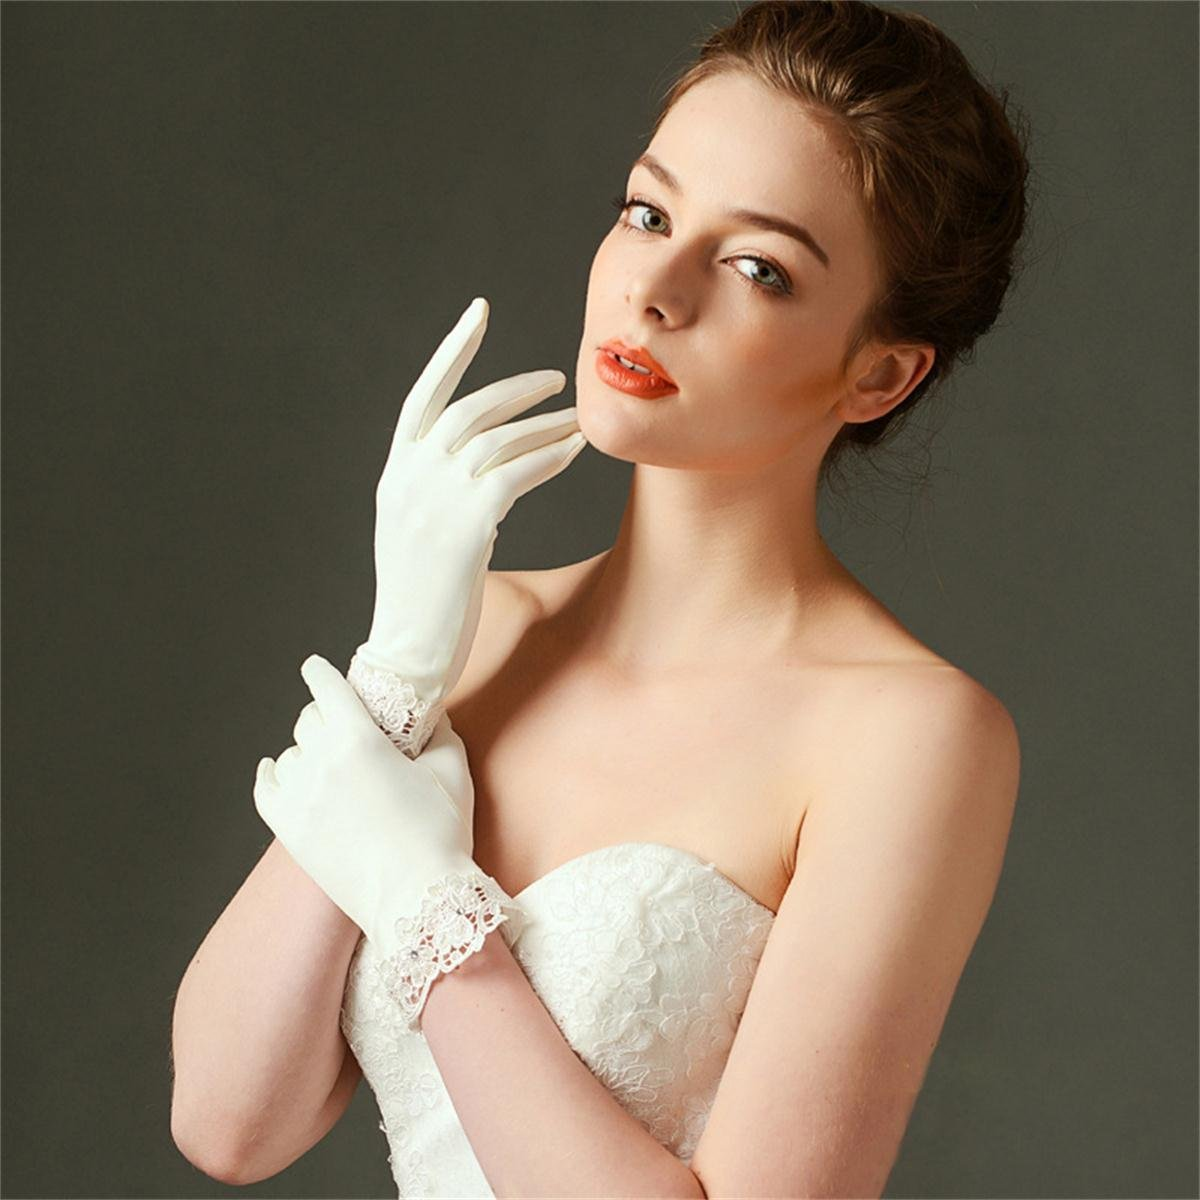 MissDaisy Dull Matte Satin Bride Gloves Ivory Lace Edge Party Short Dress Gloves by MissDaisy (Image #2)